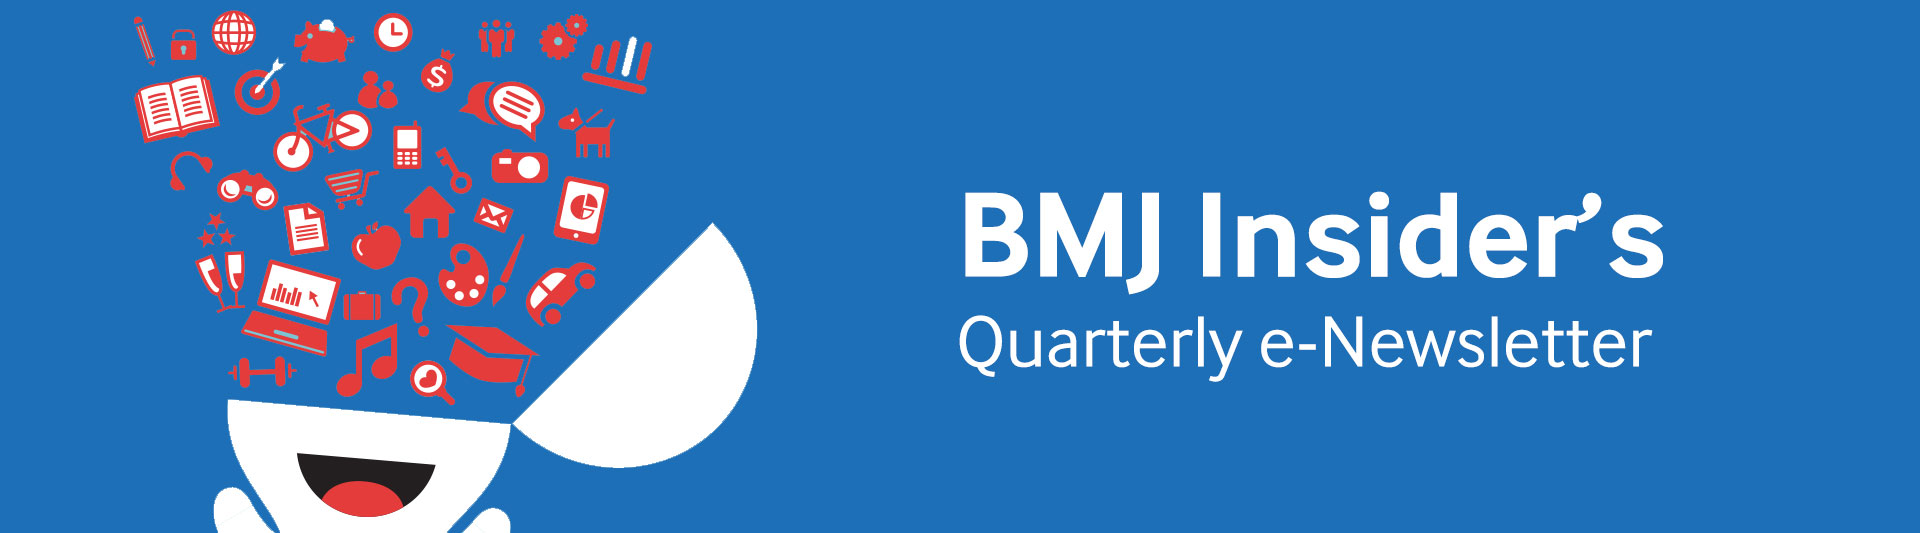 BMJ Insider's Newsletter